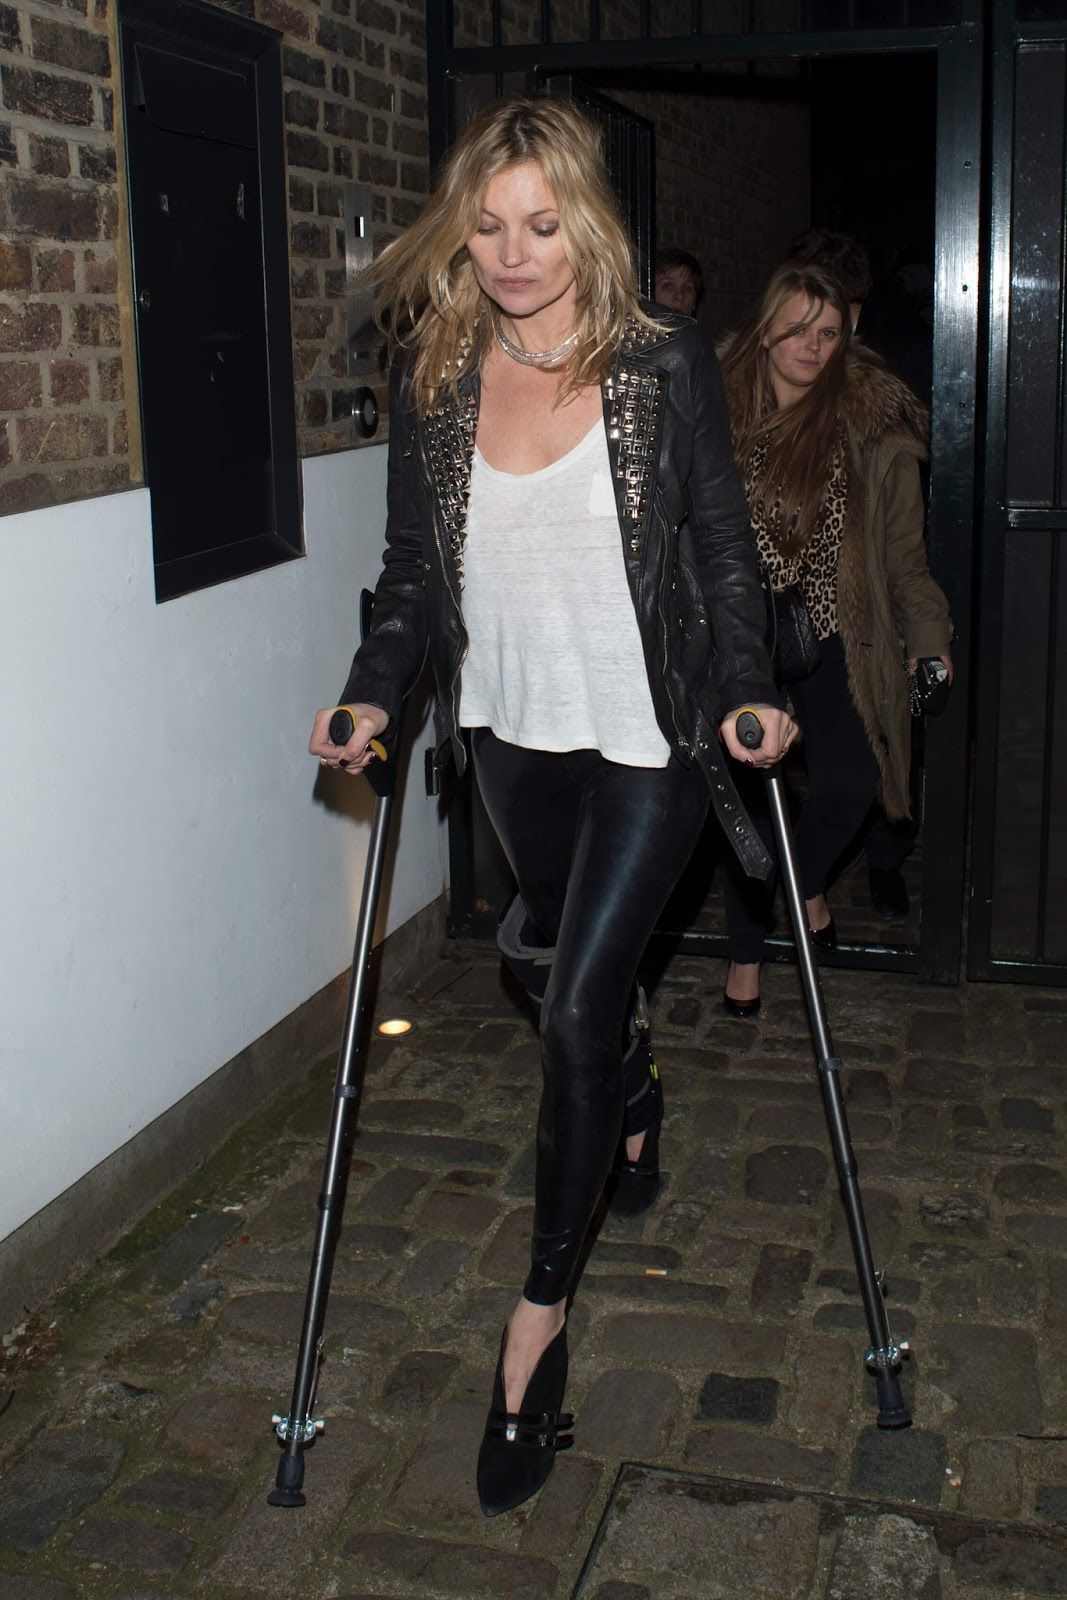 706936a9dec419 British model Kate Moss wearing a black leather jacket with skin-tight black  latex pants (while on crutches):